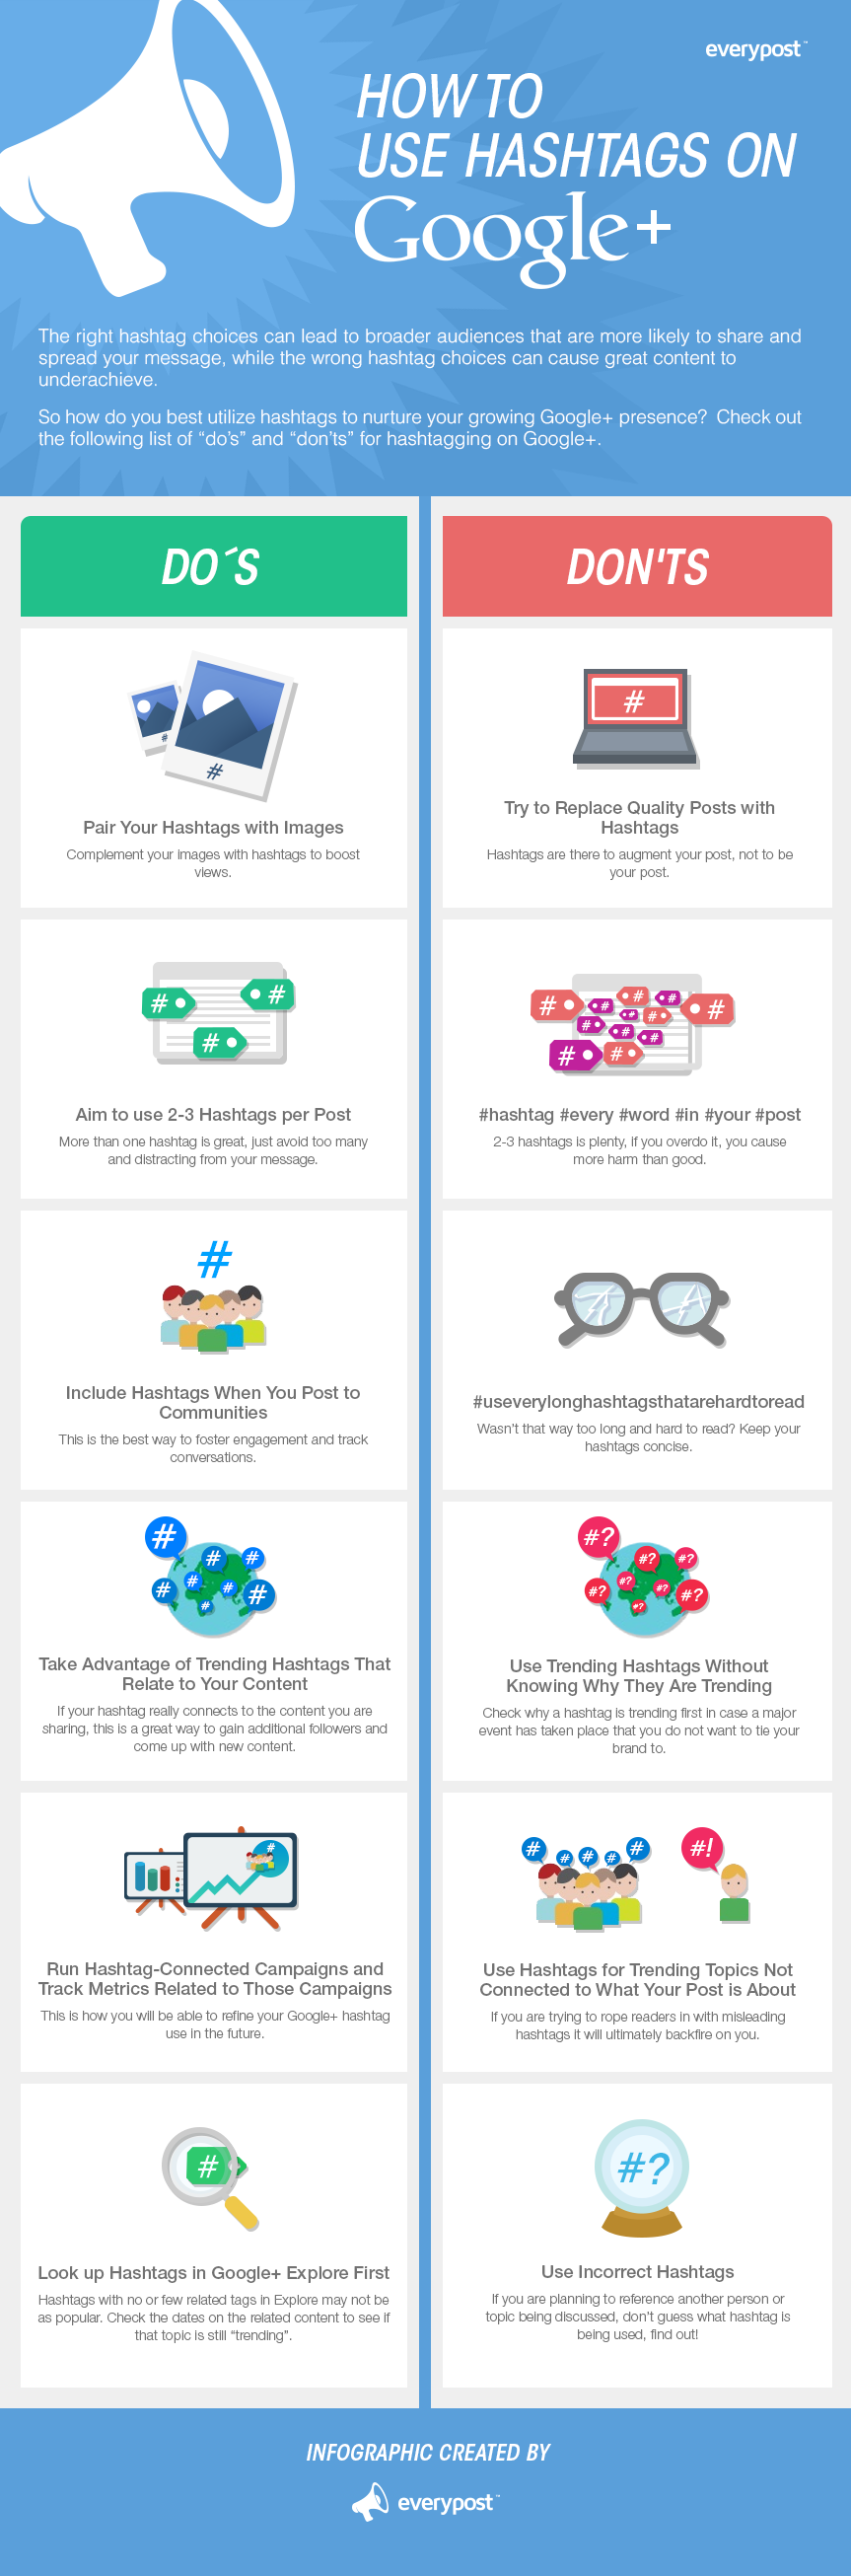 How to Use Hashtags on #GooglePlus: Dos and Don'ts - #infographic #socialmedia #marketing